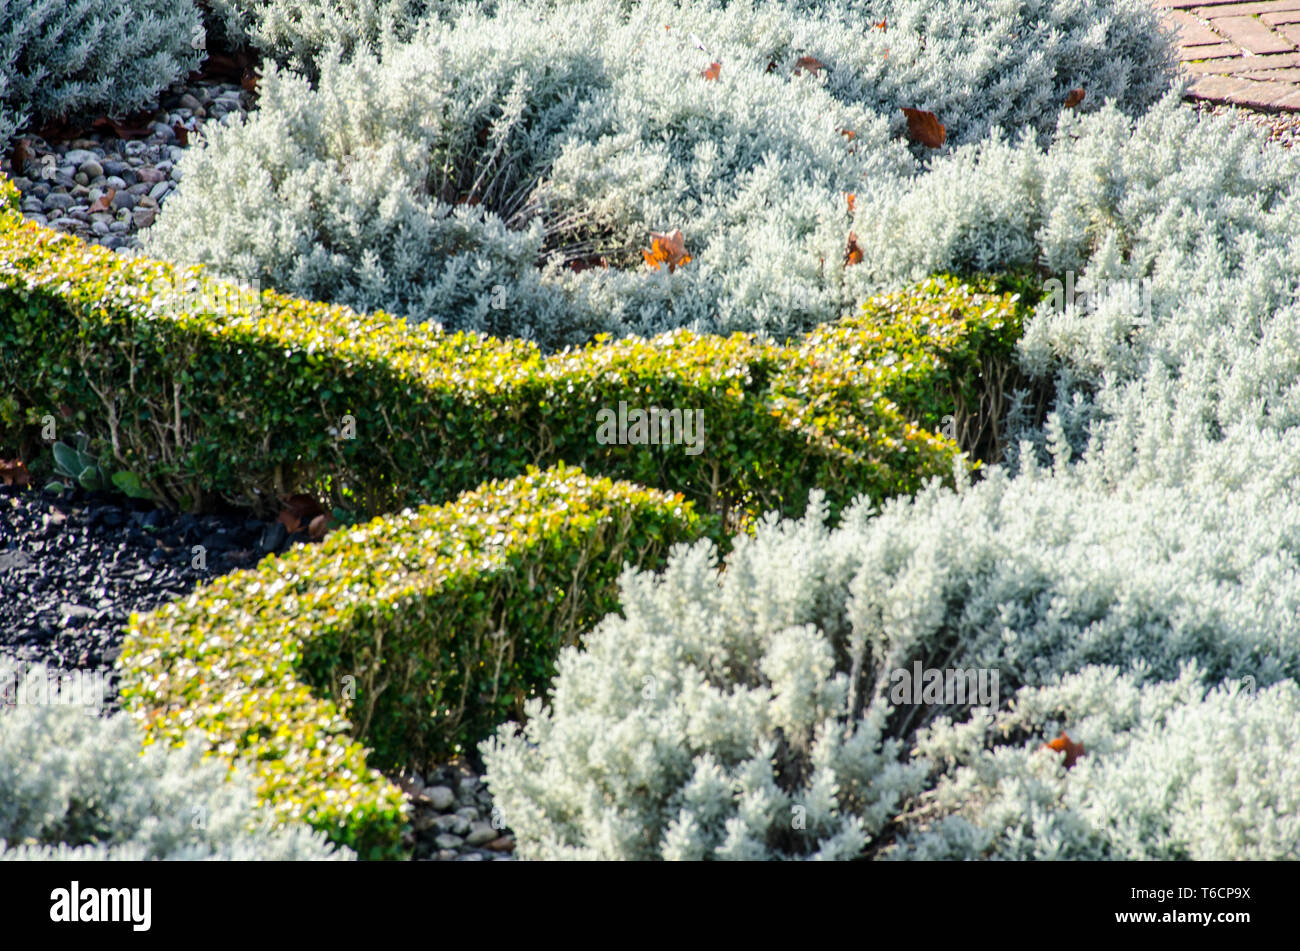 Looking down at hedging - Stock Image